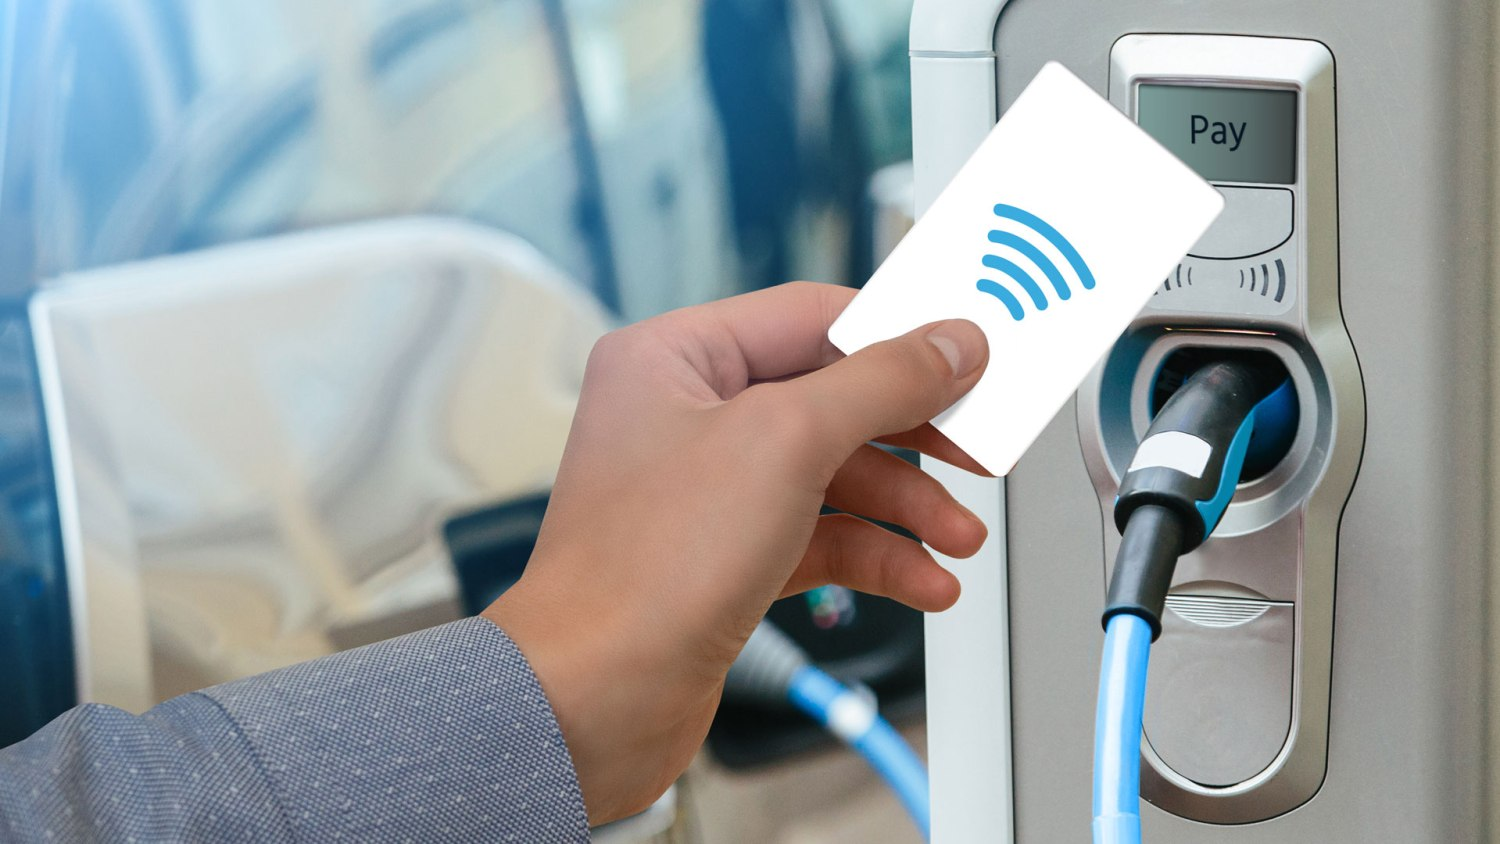 UK rapid charge points to accept card payments by 2020